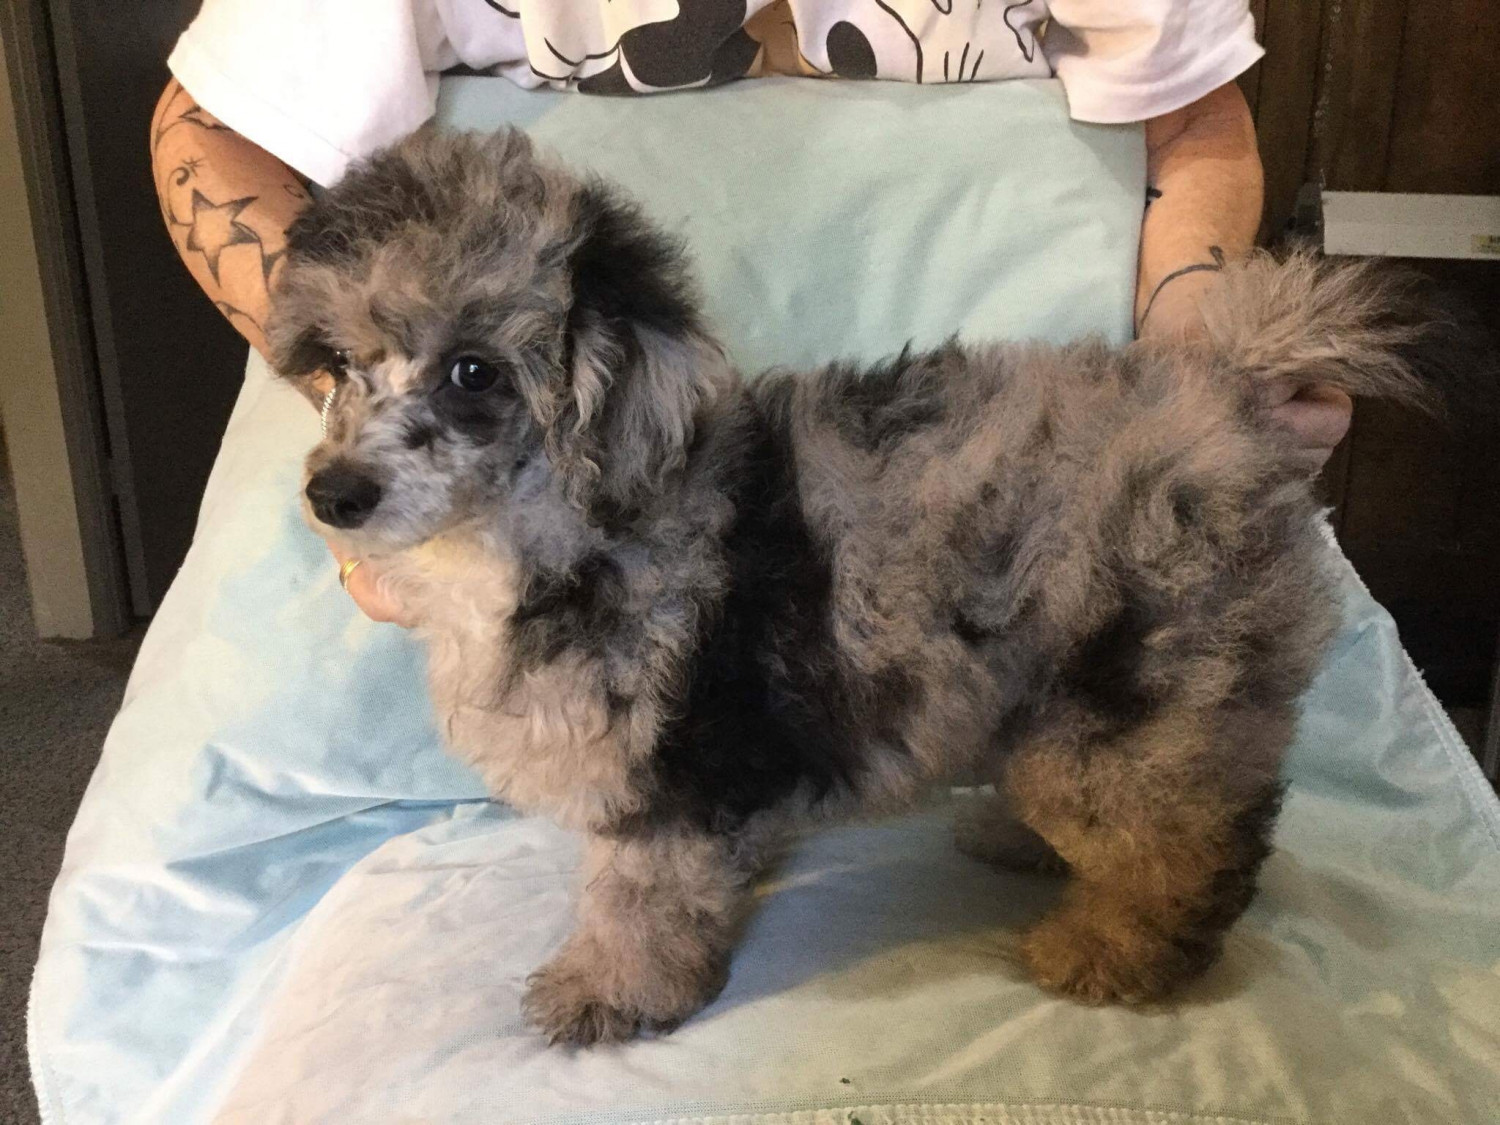 Poodle Puppies For Sale | Wyoming USA #244671 | Petzlover